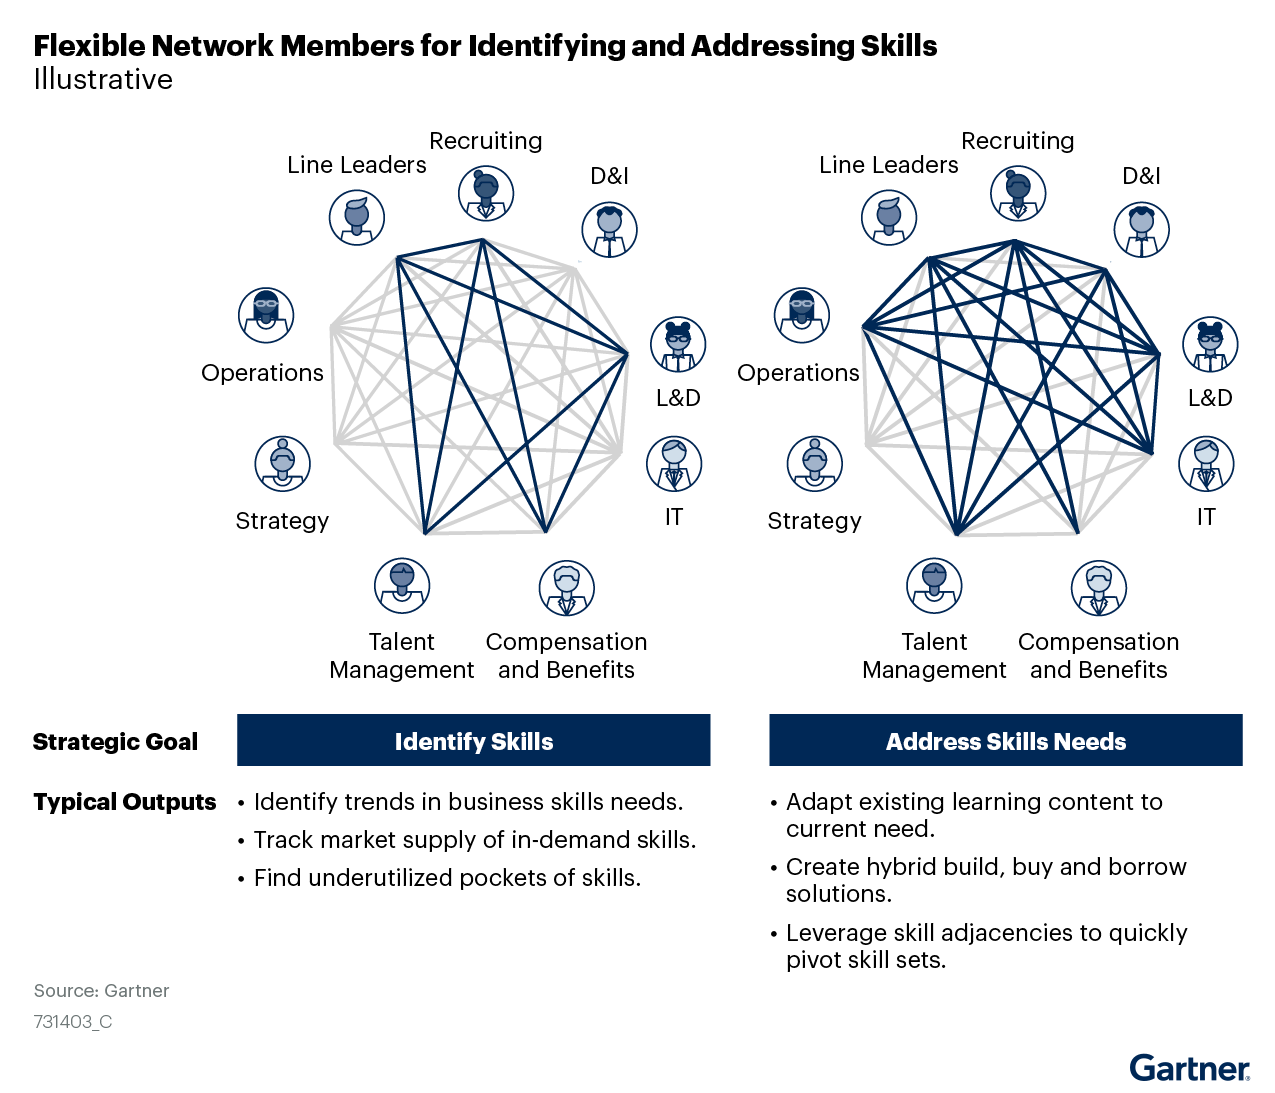 Figure 3: Flexible Network Members for Identifying and Addressing Skills